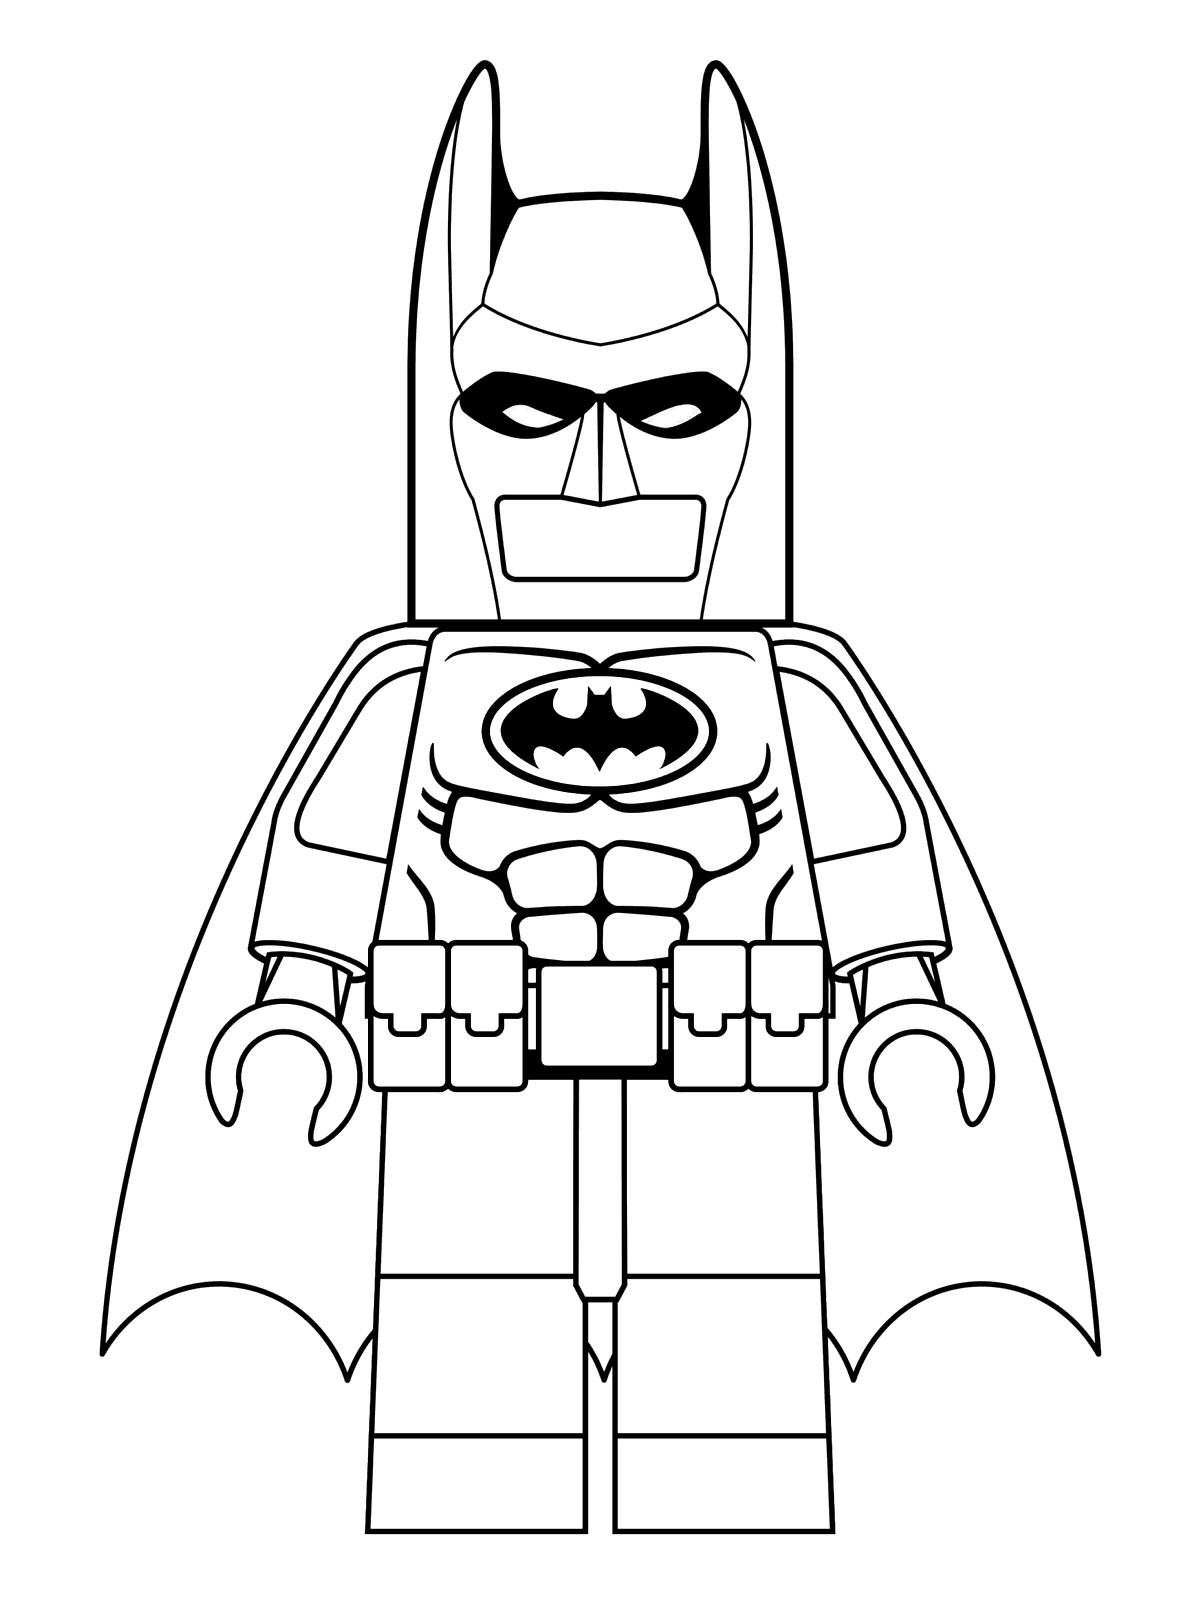 16 Lego Batman Movie Coloring Pages